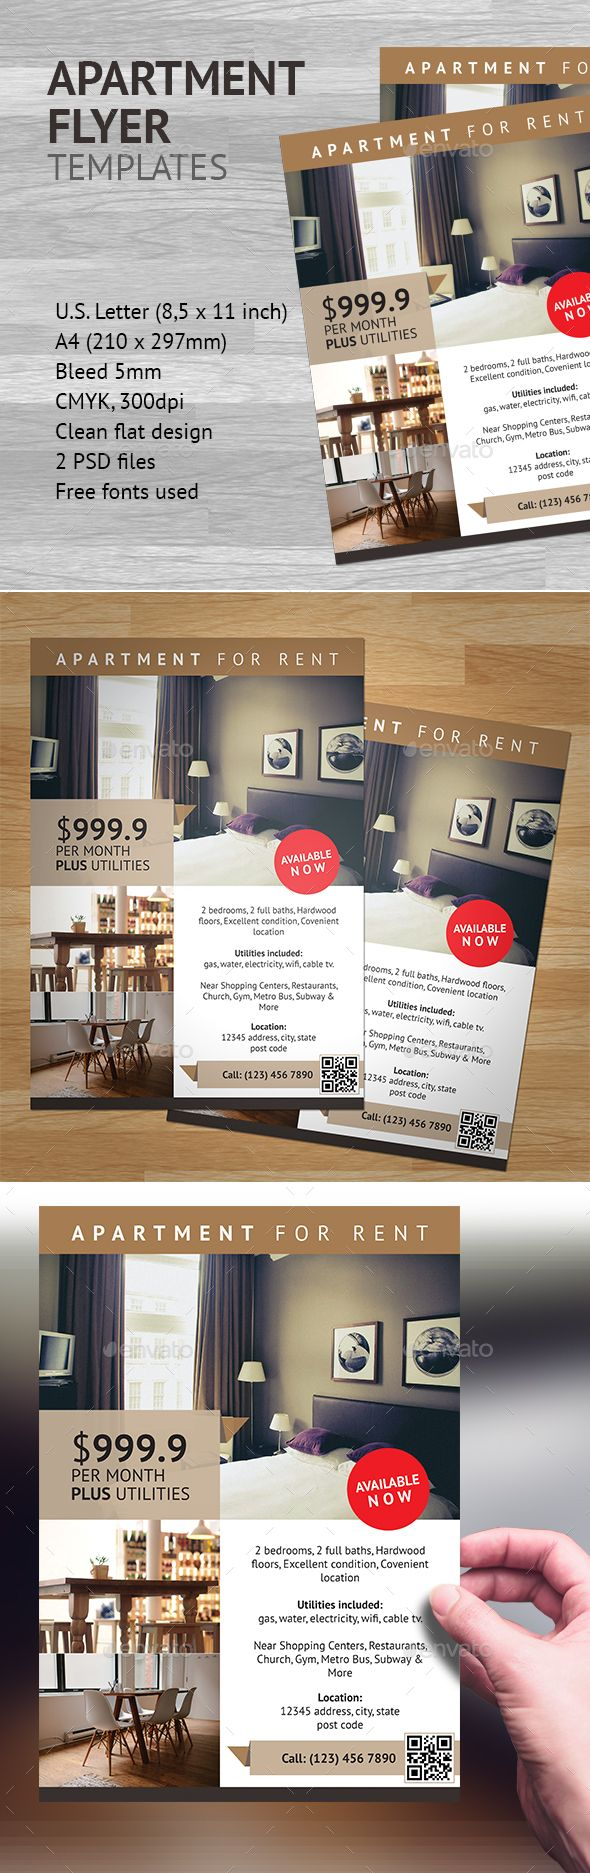 Apartment Flyer Template   Flyer Template And Apartments